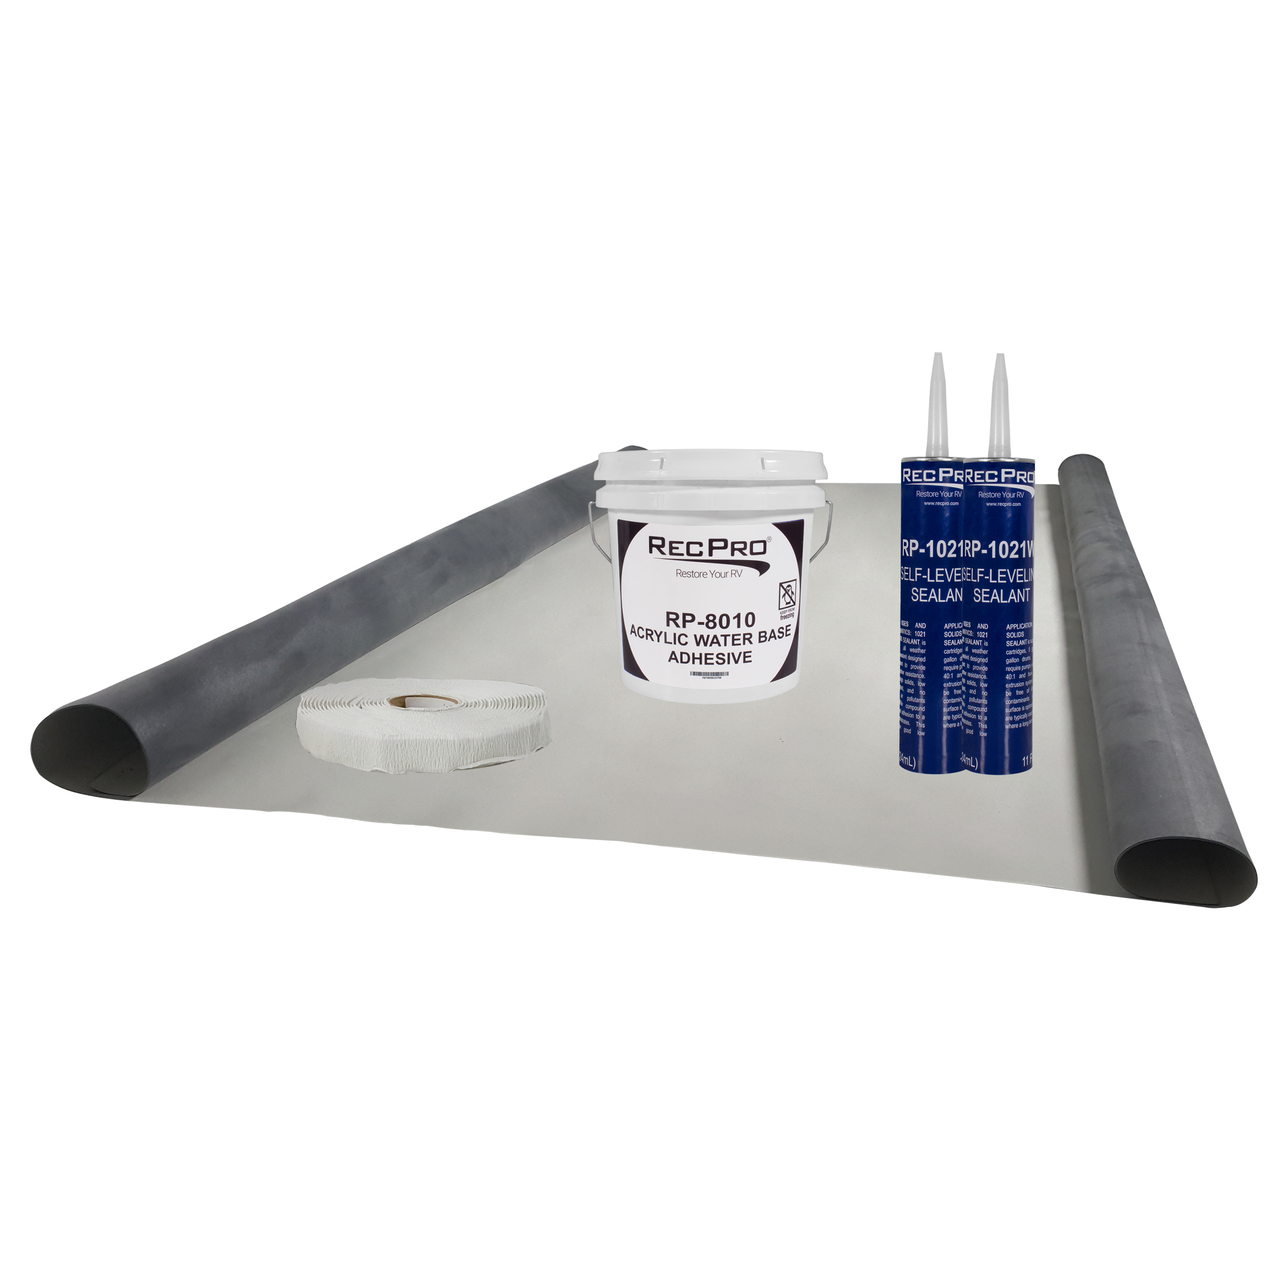 Roofing 9 5 Wide Epdm Rv Rubber Roof Kit